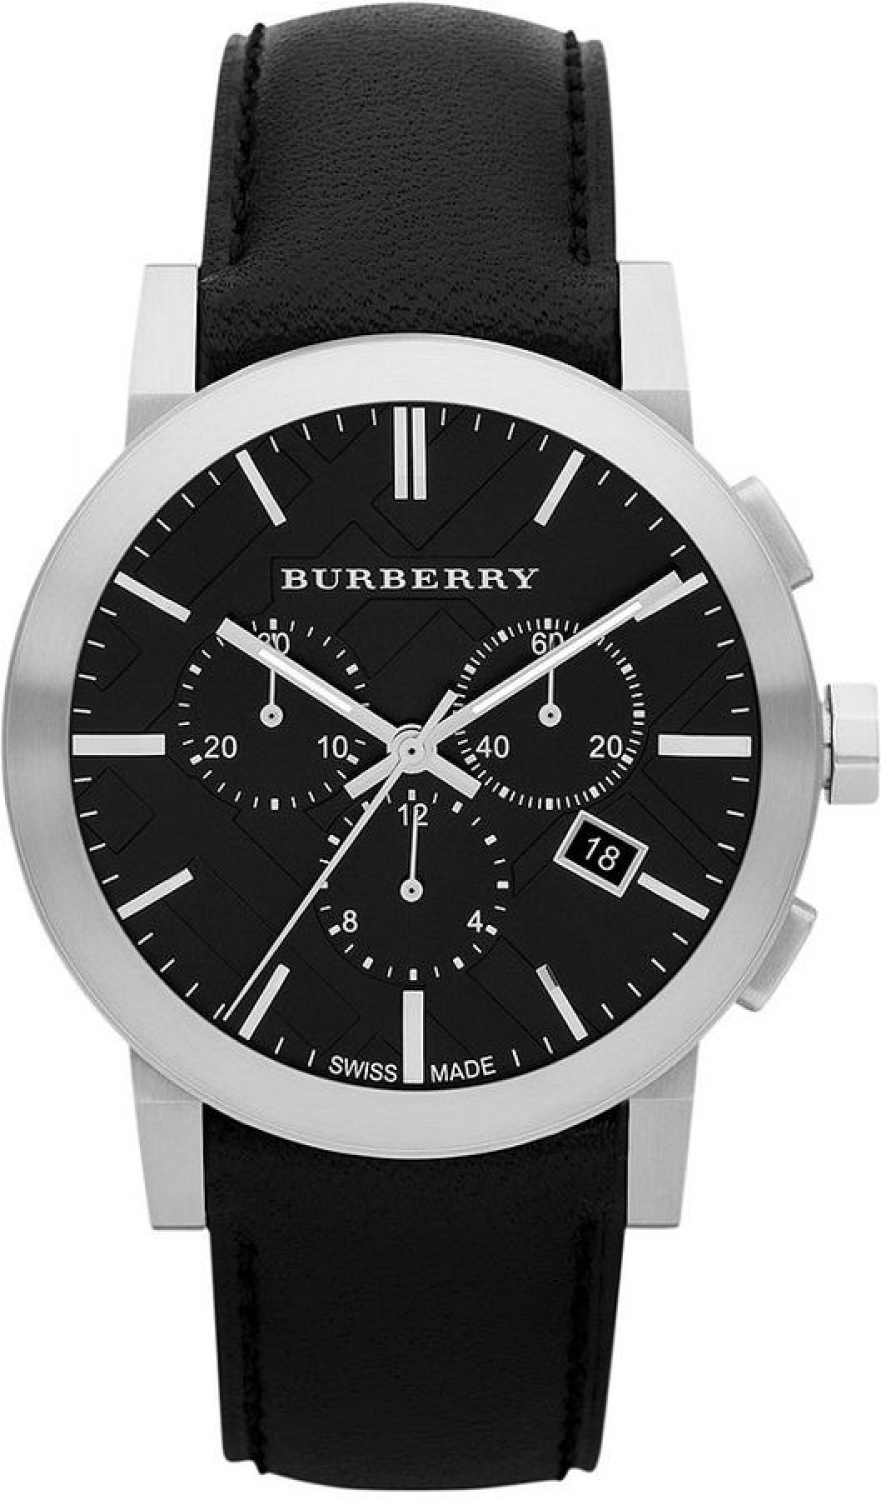 Burberry-Chronograph-Black-Dial-Black-Leather-Mens-BU9356